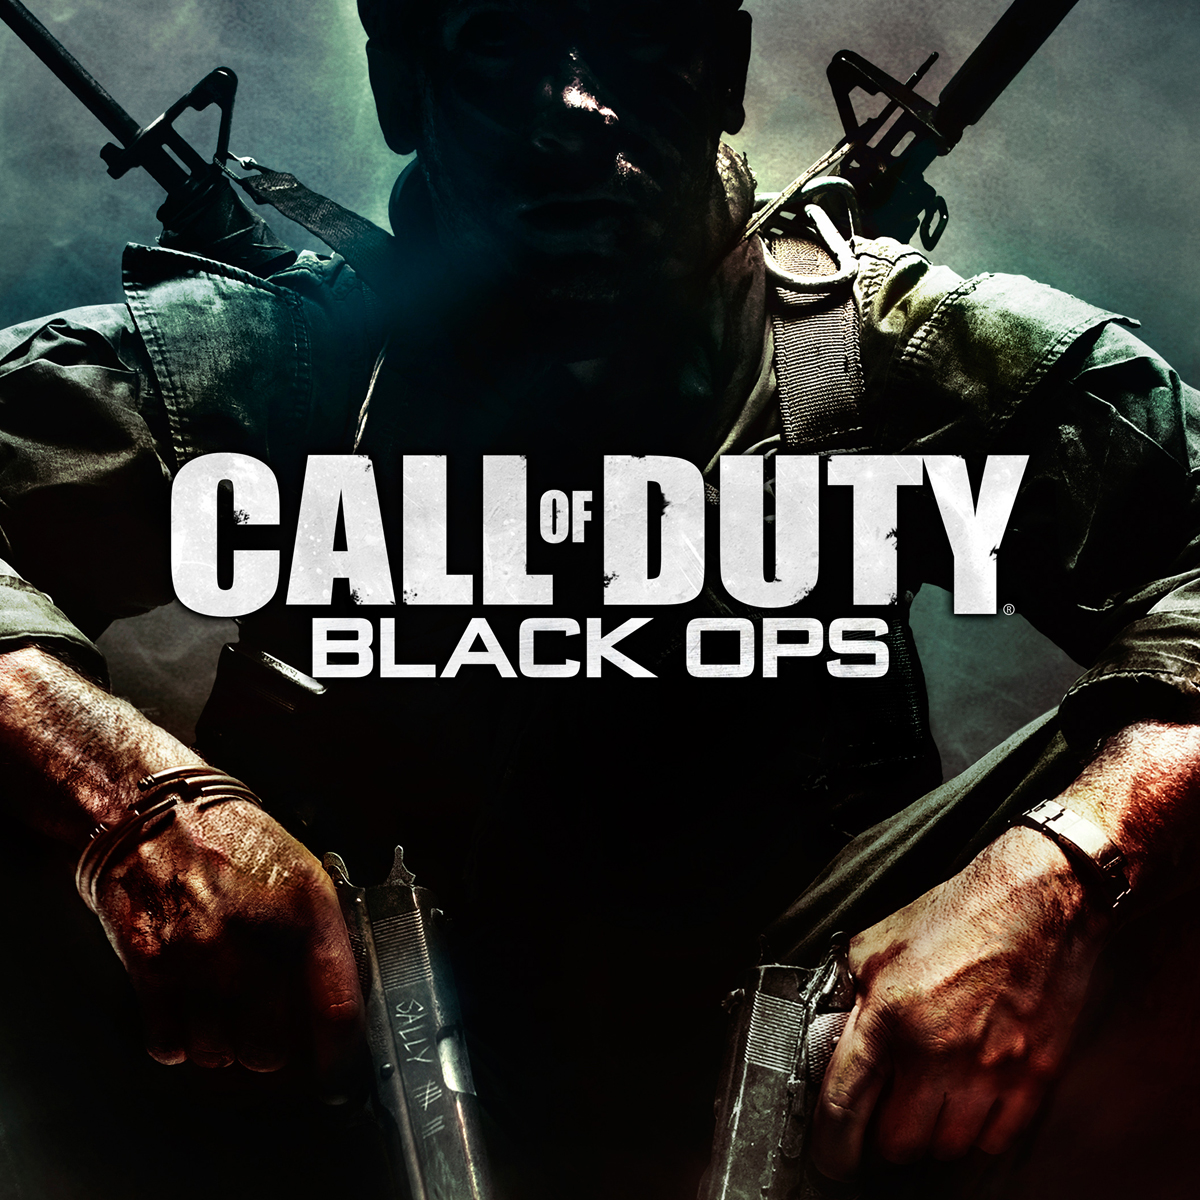 Call of duty modern warfare 2 ign rating - Black Ops Bronze Package